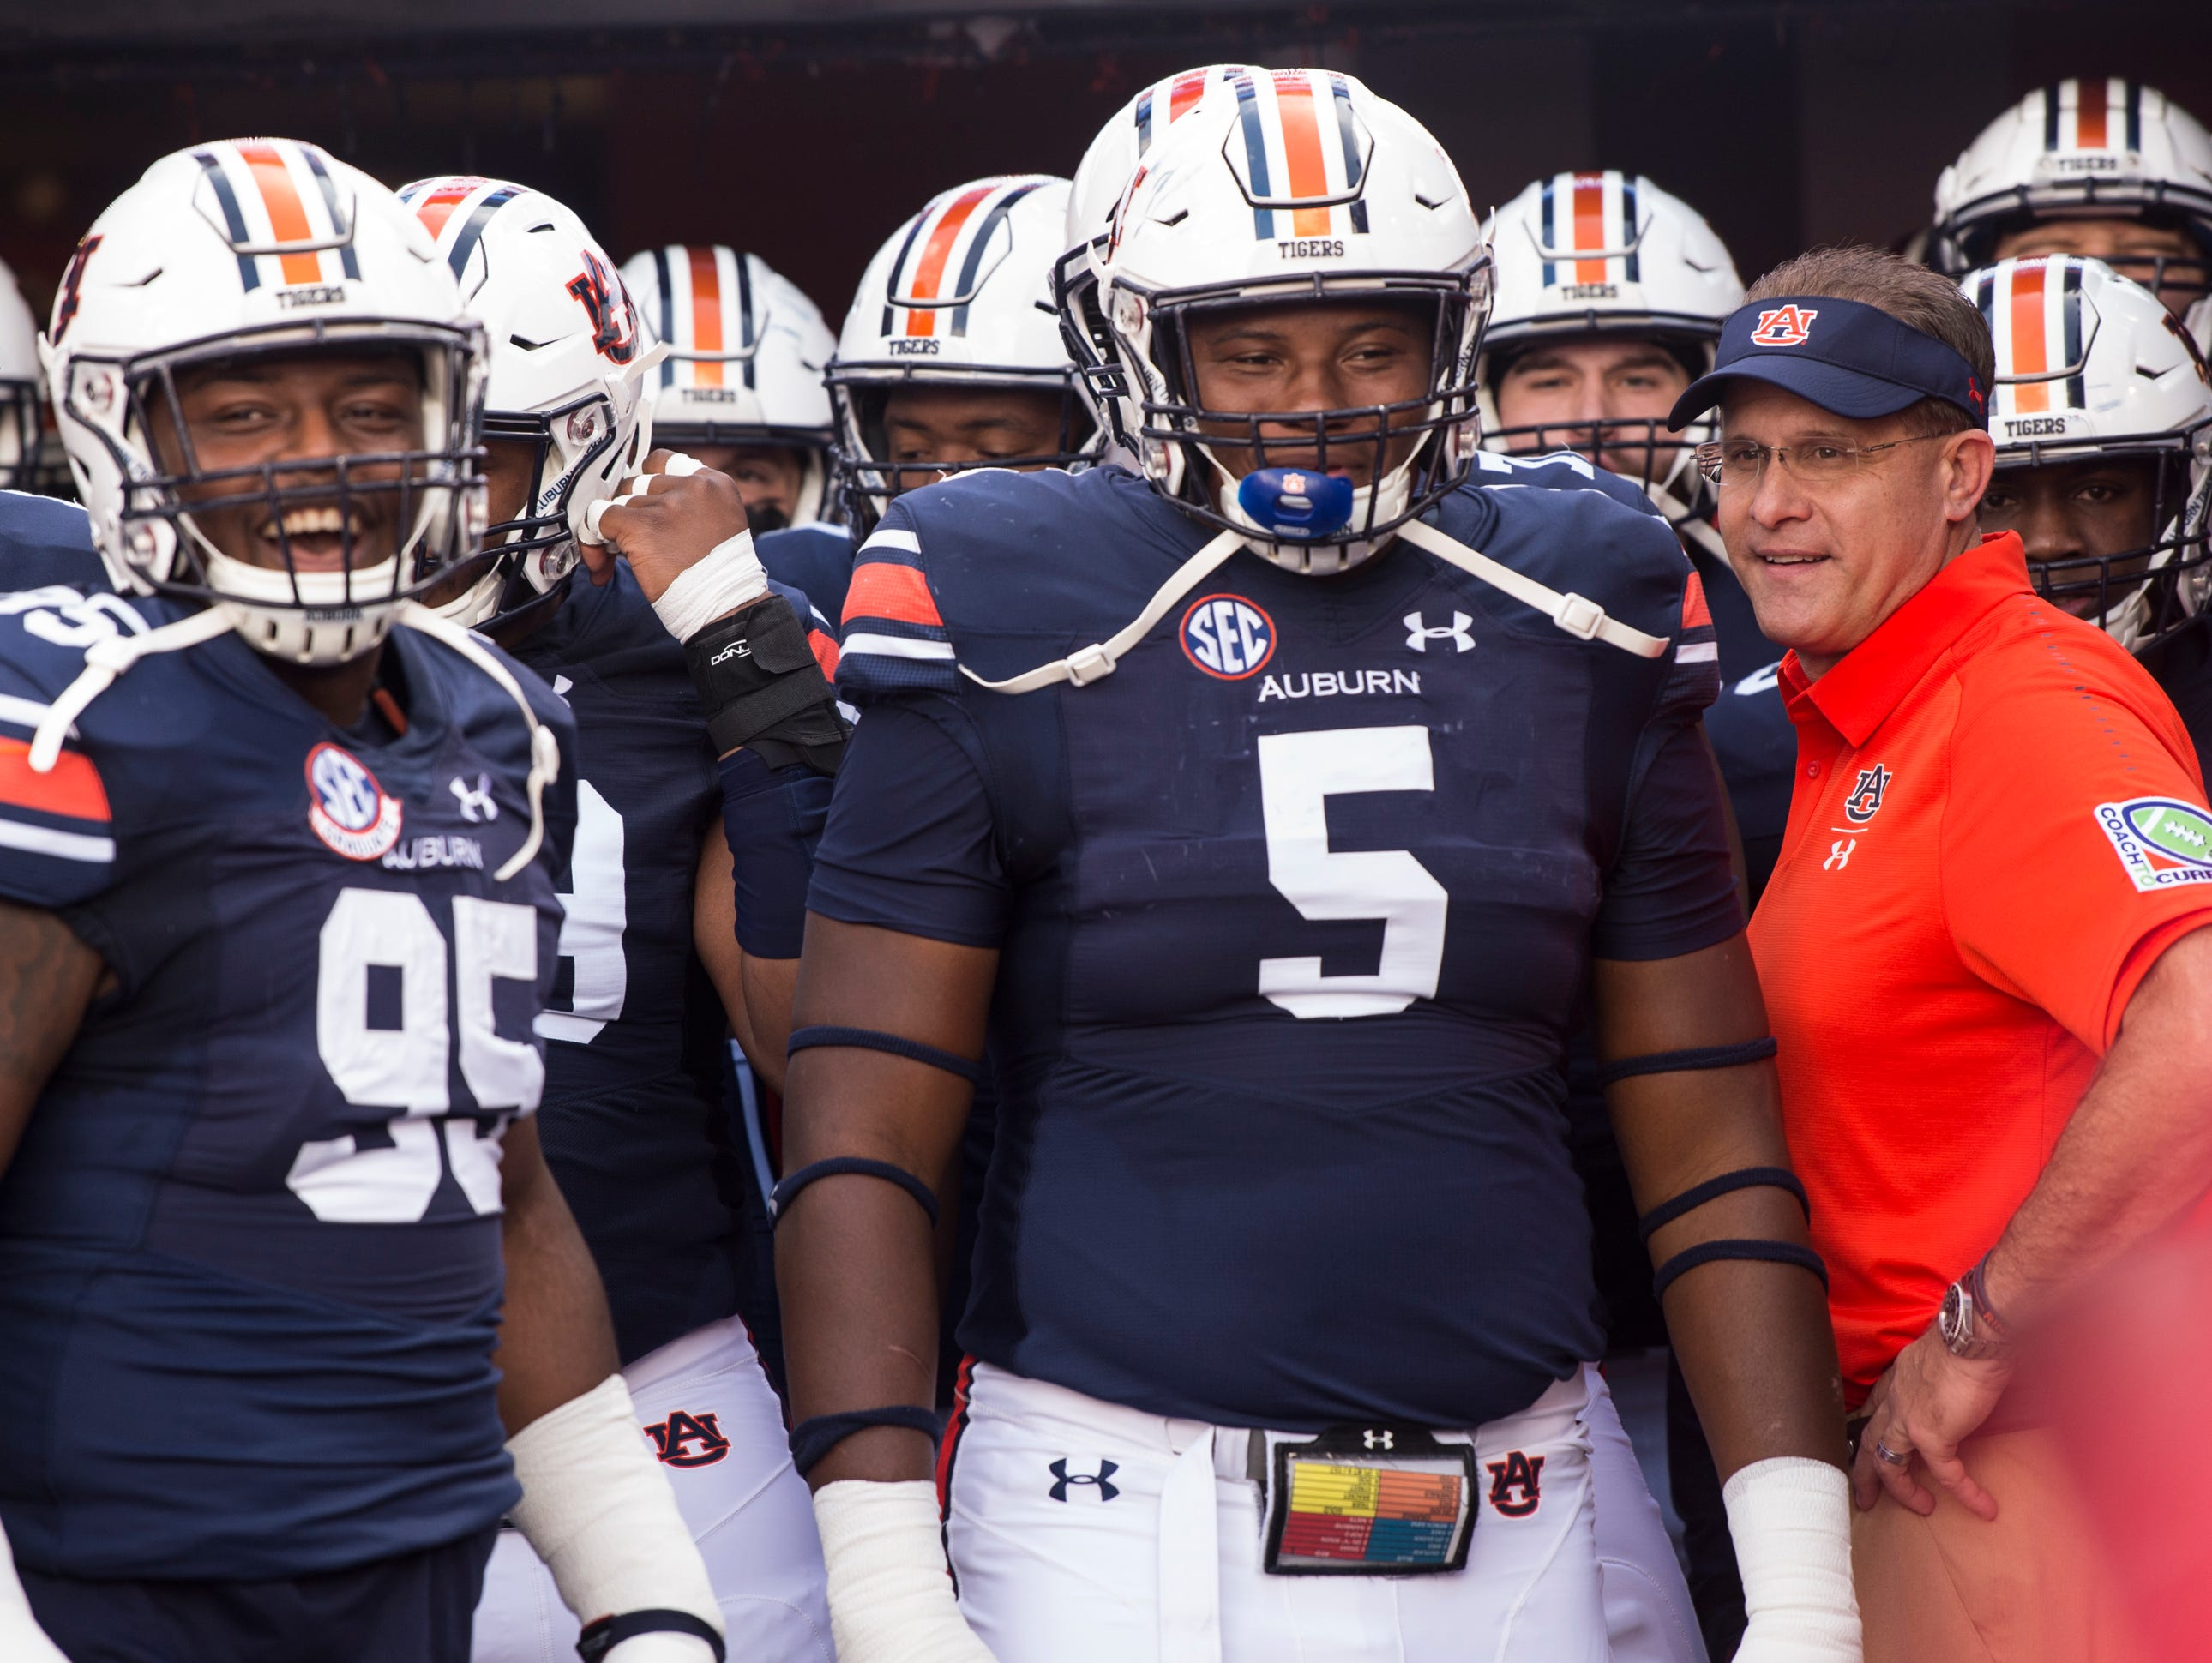 Auburn head coach Gus Malzahn, left, leads his team out on to the field at Jordan-Hare Stadium in Auburn, Ala., on Saturday, Sept. 29, 2018. Auburn leads Southern Miss 14-3, the game went into a weather delay with 4:27 left in the second quarter.